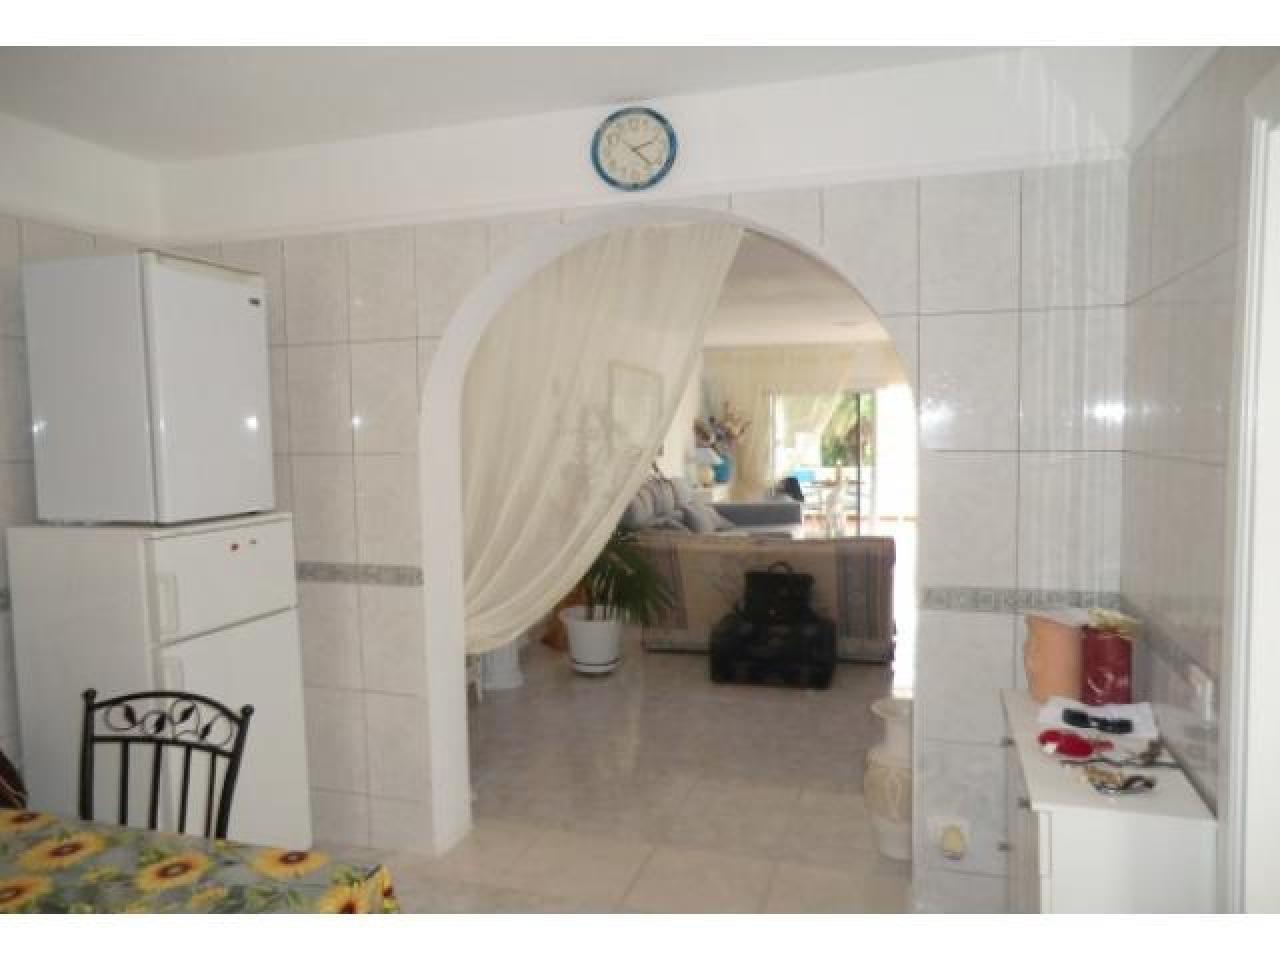 Real estate in Tenerife for sale » #217 - 3